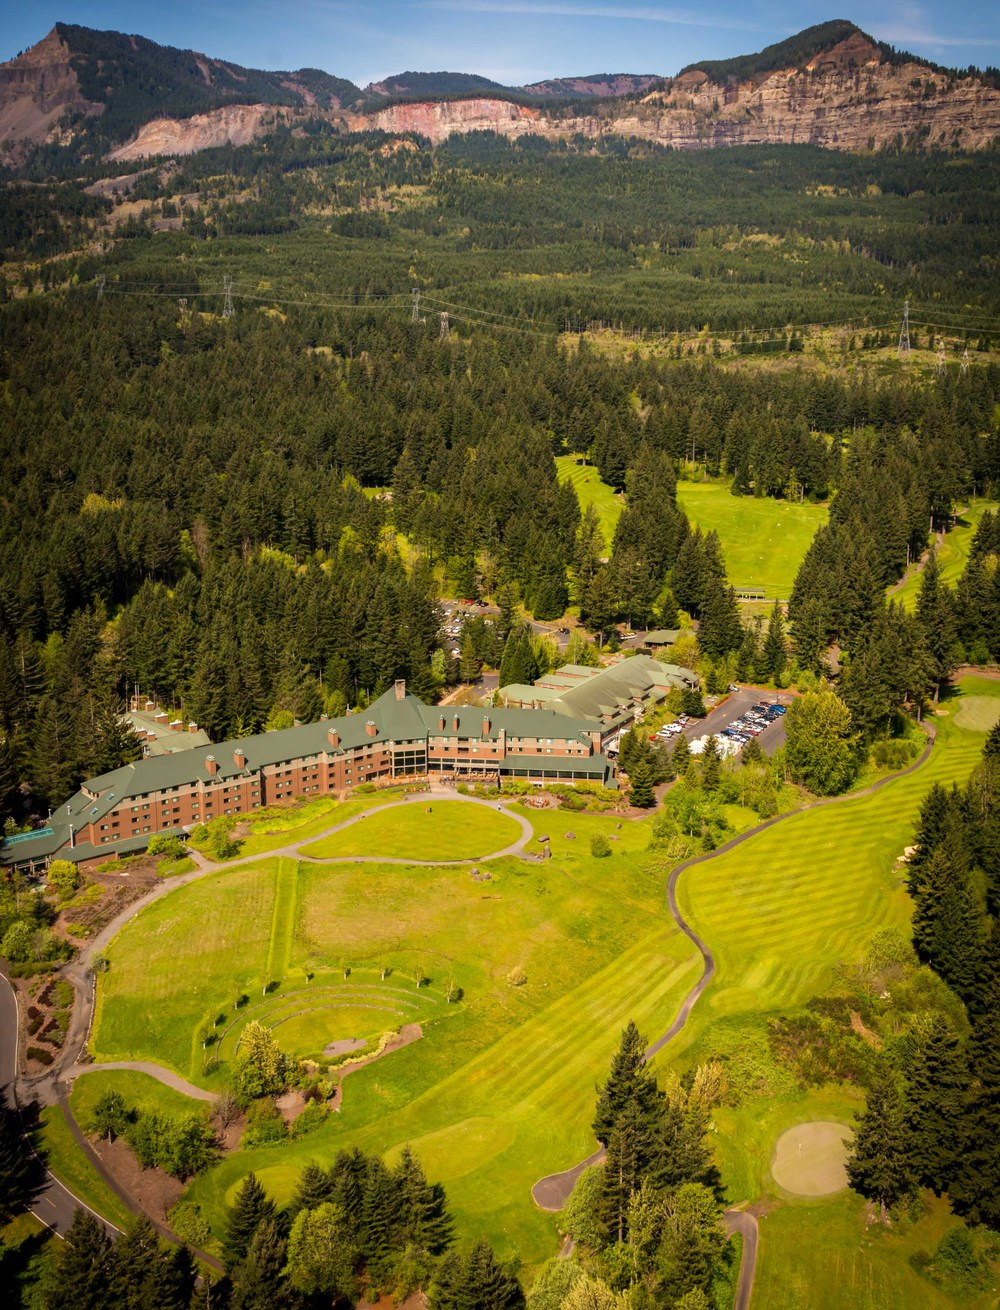 20140429_Aerial_WM-Skamania Lodge_022.jpg